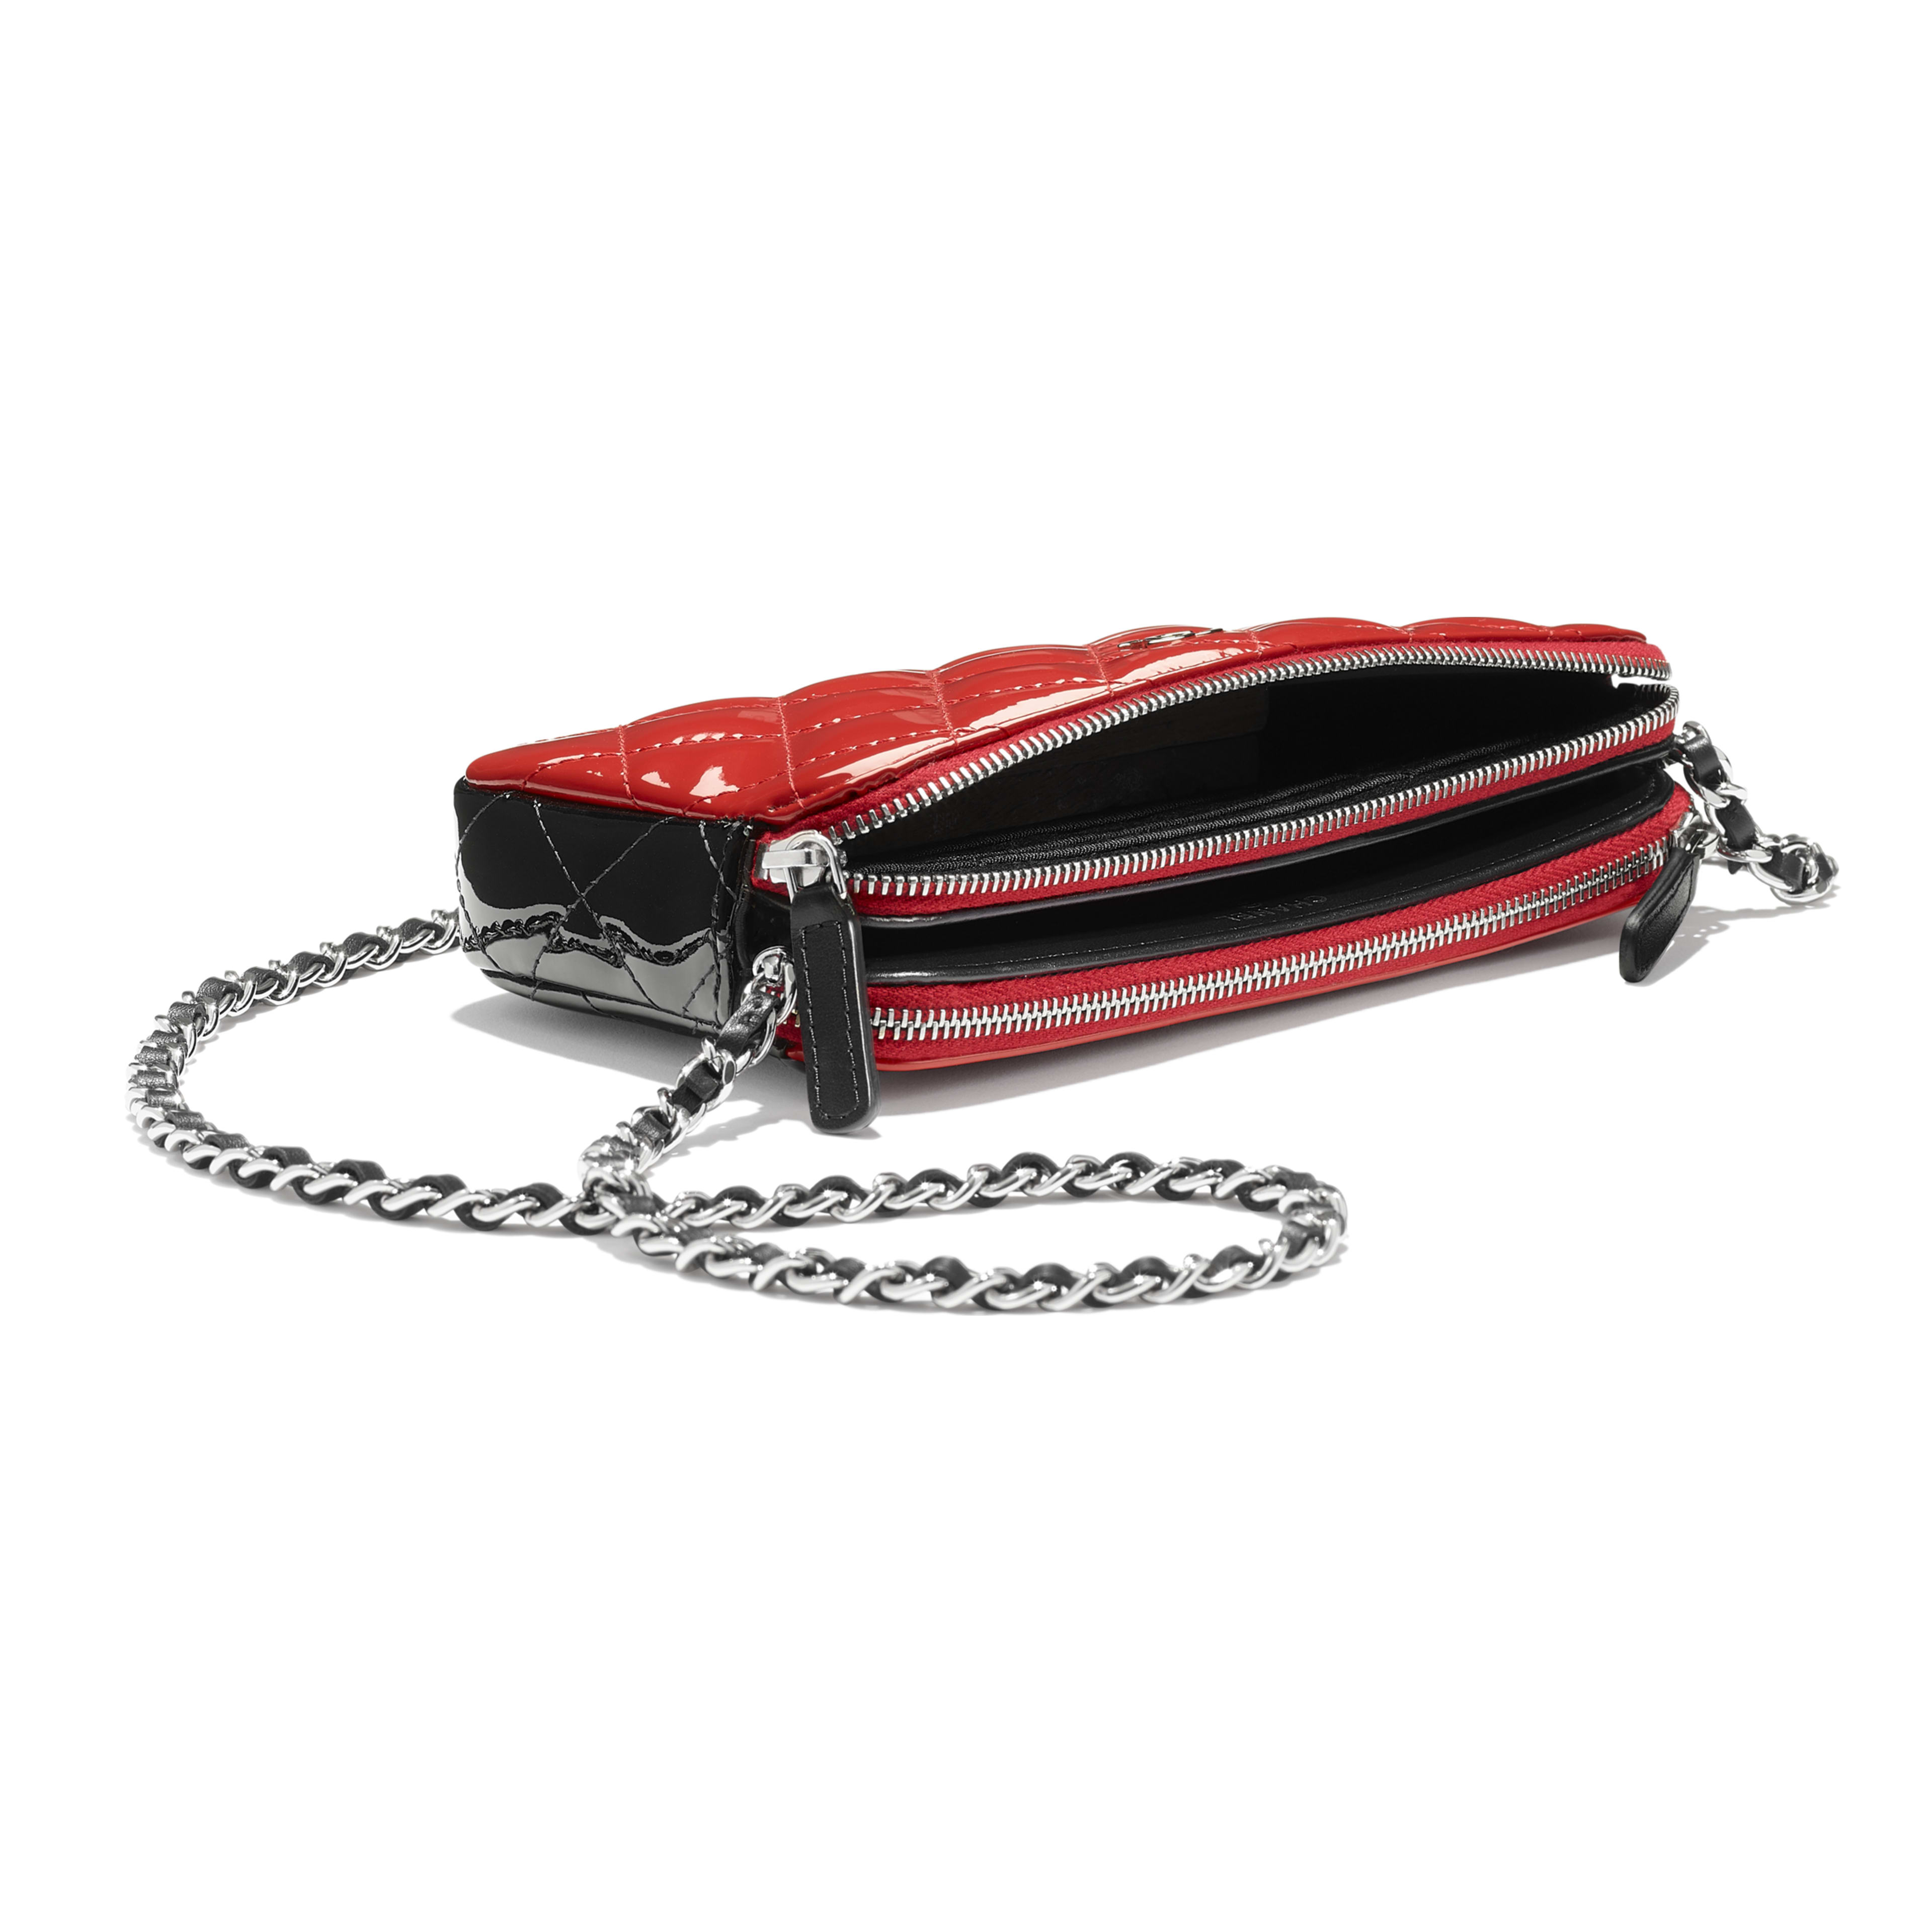 Classic Clutch With Chain - Red & Black - Patent Calfskin - Extra view - see full sized version